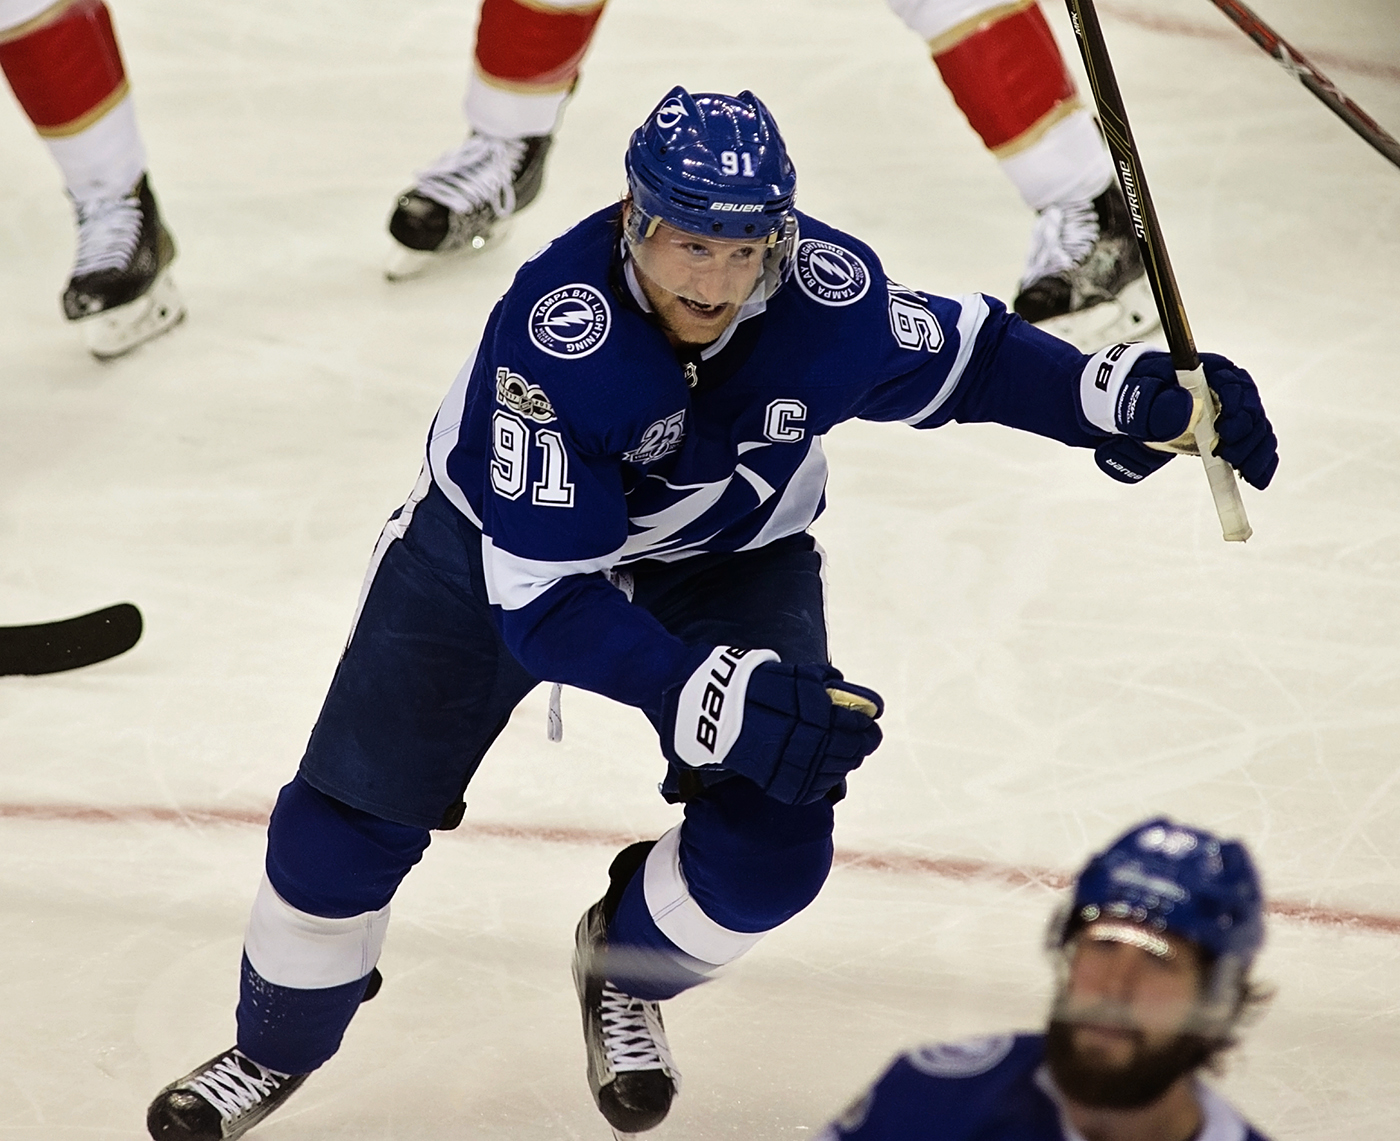 Stamkos continues to lead the league in scoring with 28 points./CARMEN MANDATO